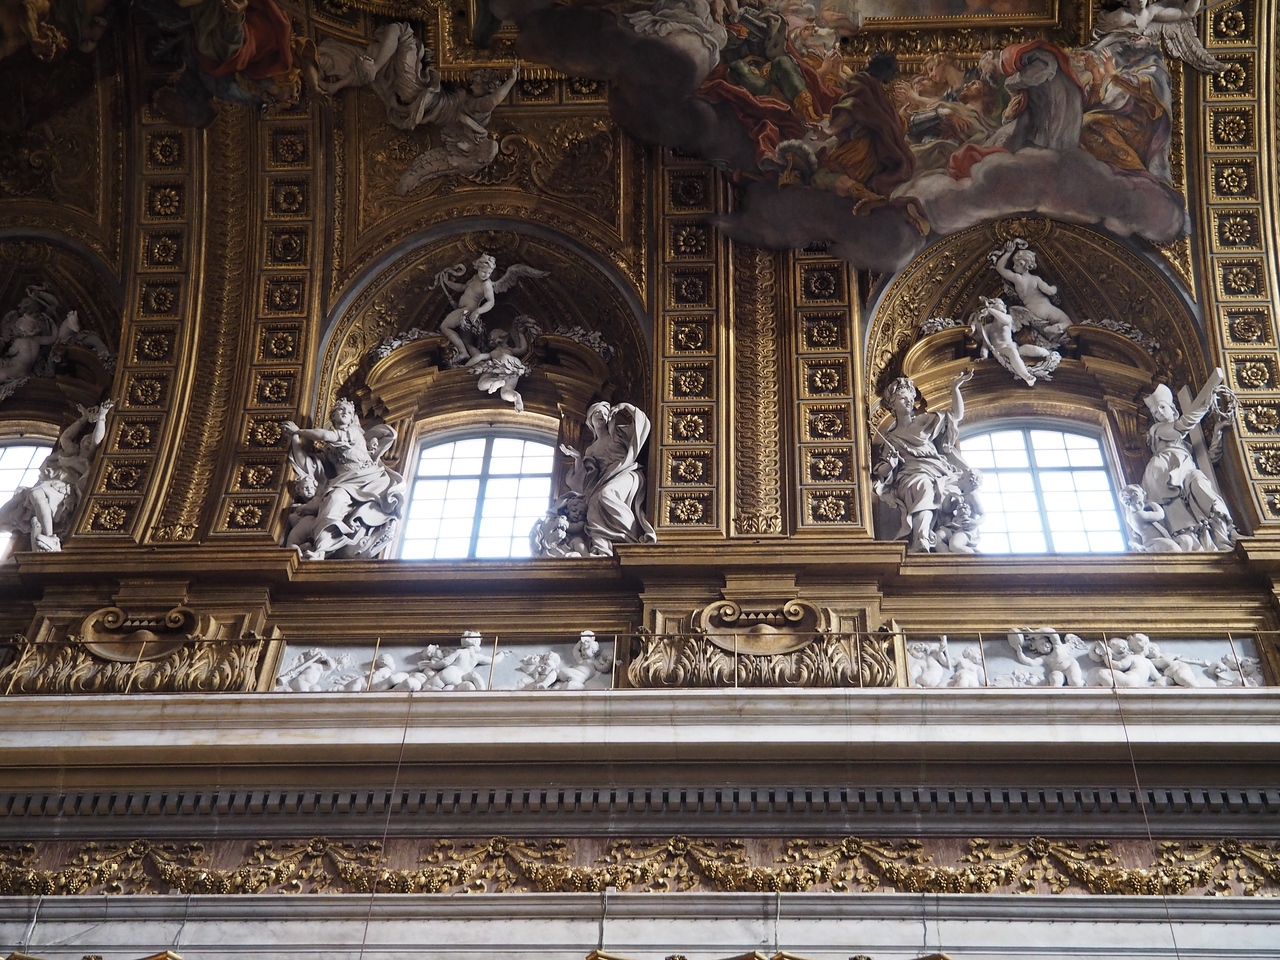 Vault of Il Gesu with gilding and sculpture